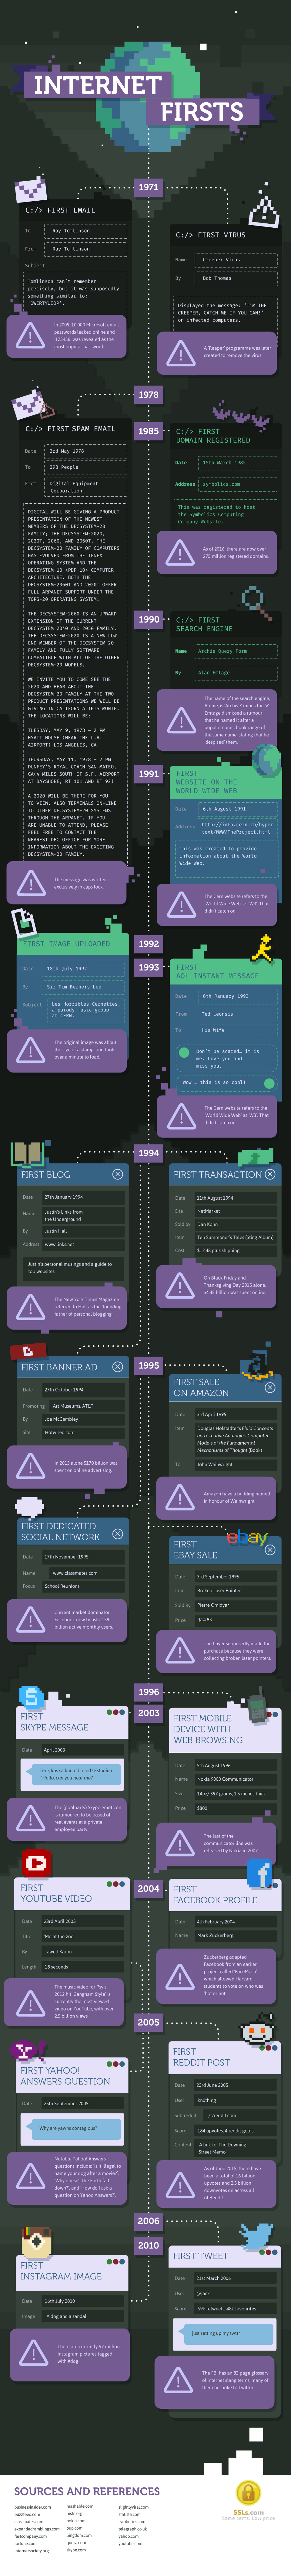 internet_firsts_infographic